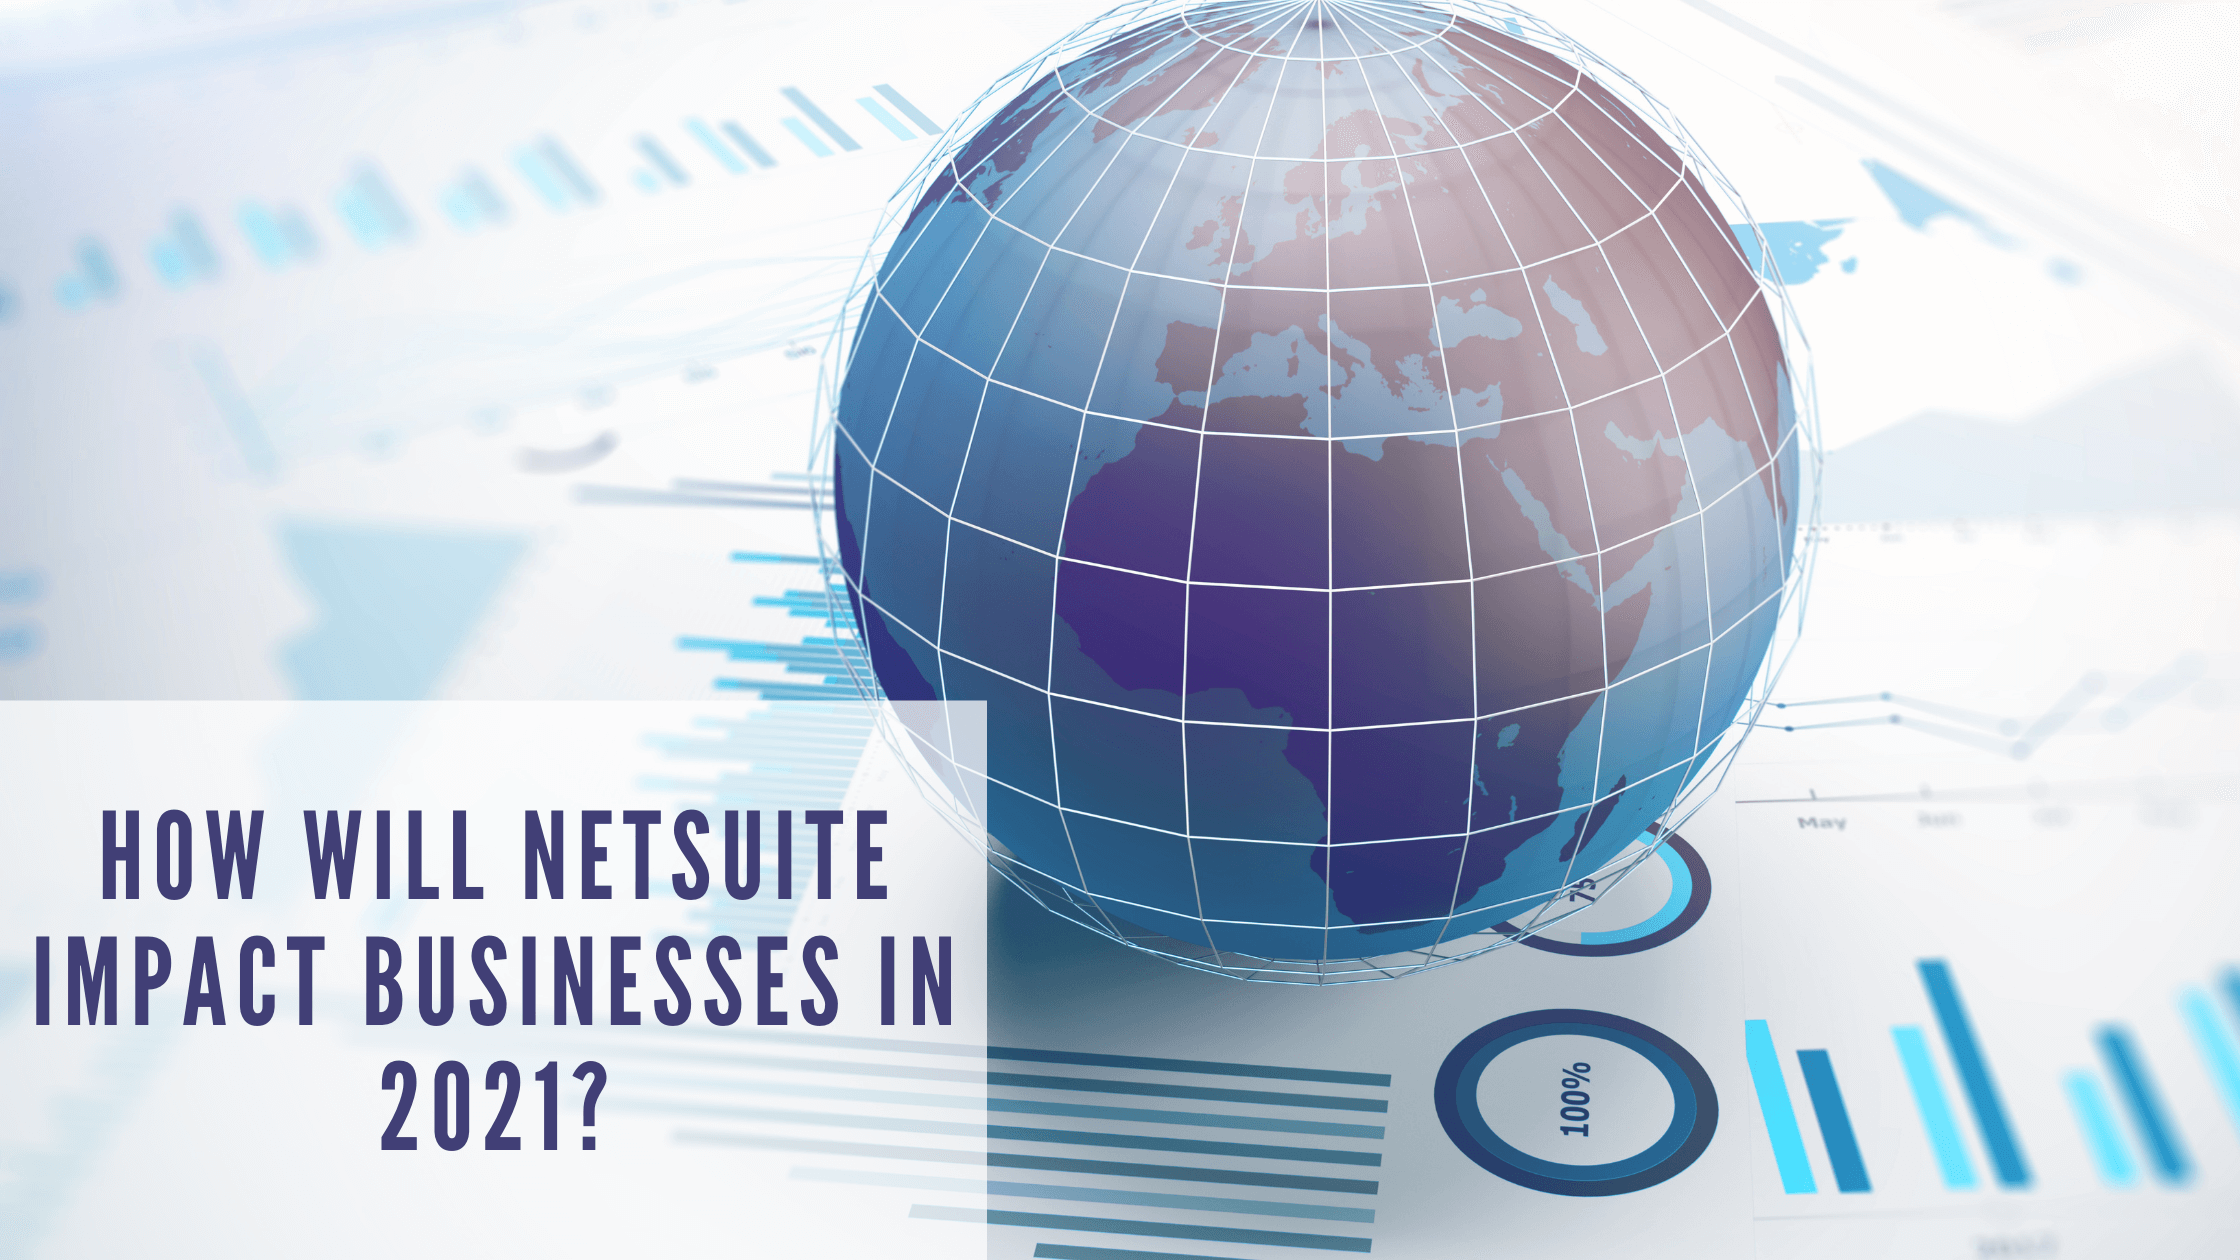 How Will NetSuite Impact Businesses in 2021?